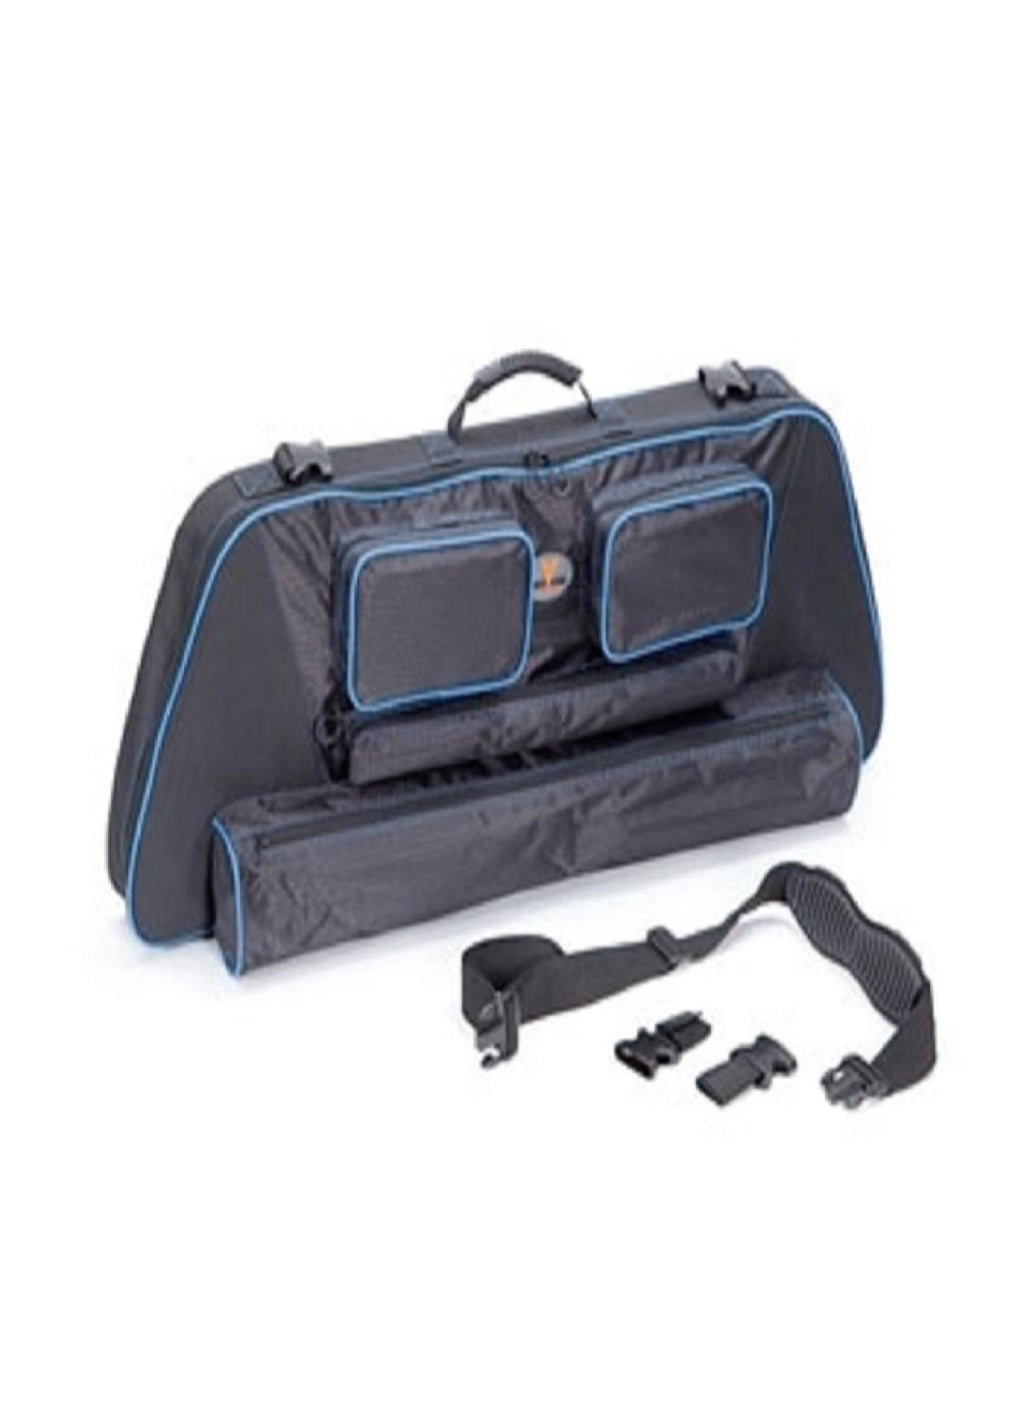 ".30-06 Outdoors 41"" Slinger Bow Case System w-Blue Accent"